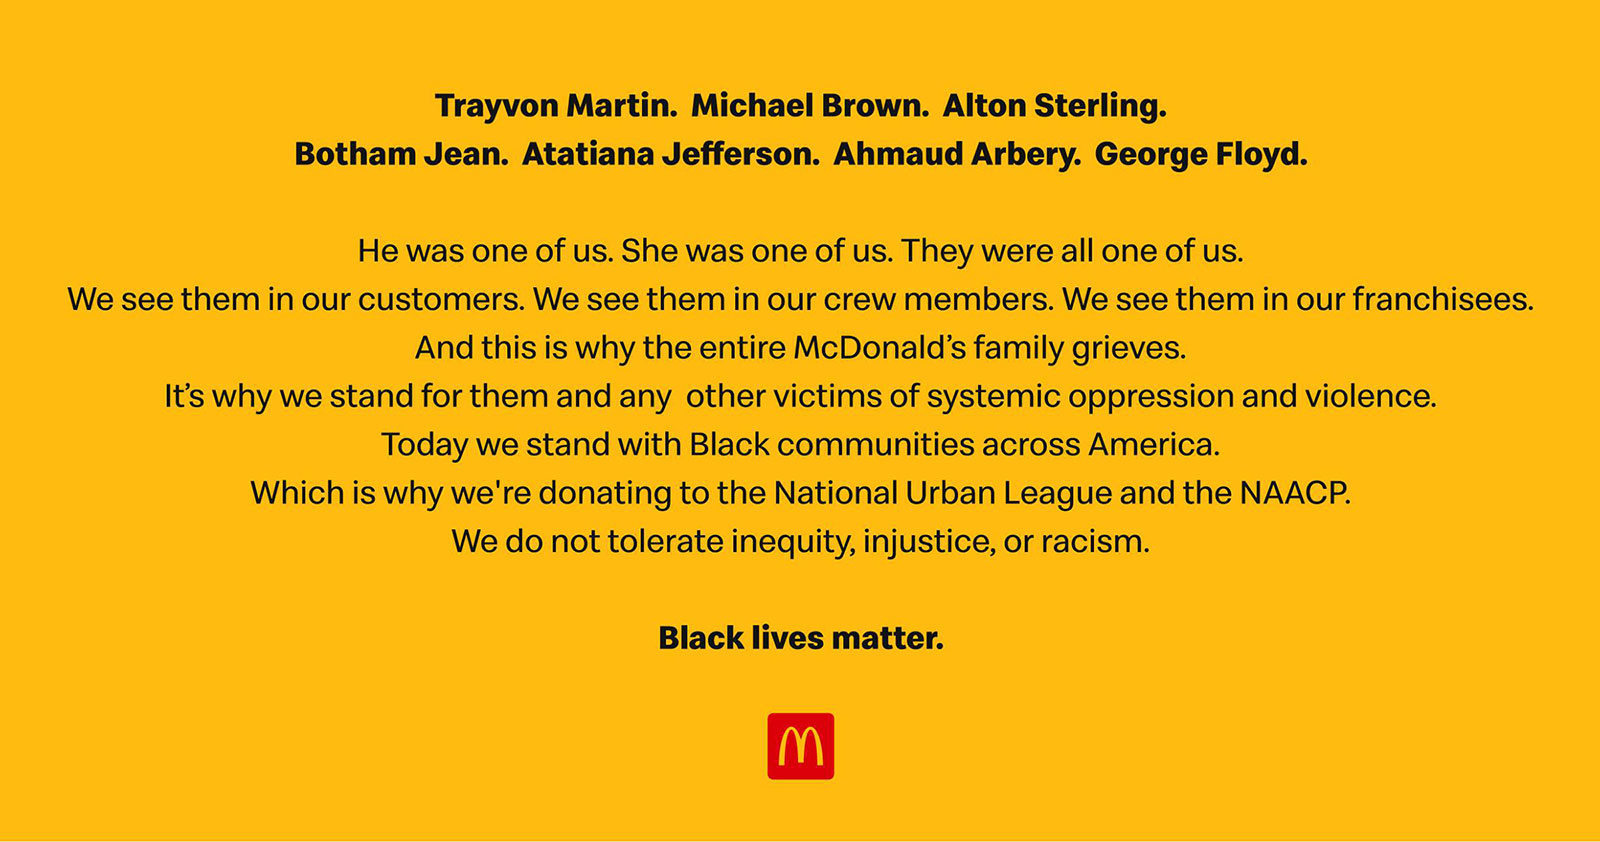 Mcdonald S Names 7 Victims Of Racial Violence In Black Lives Matter Ads Muse By Clio